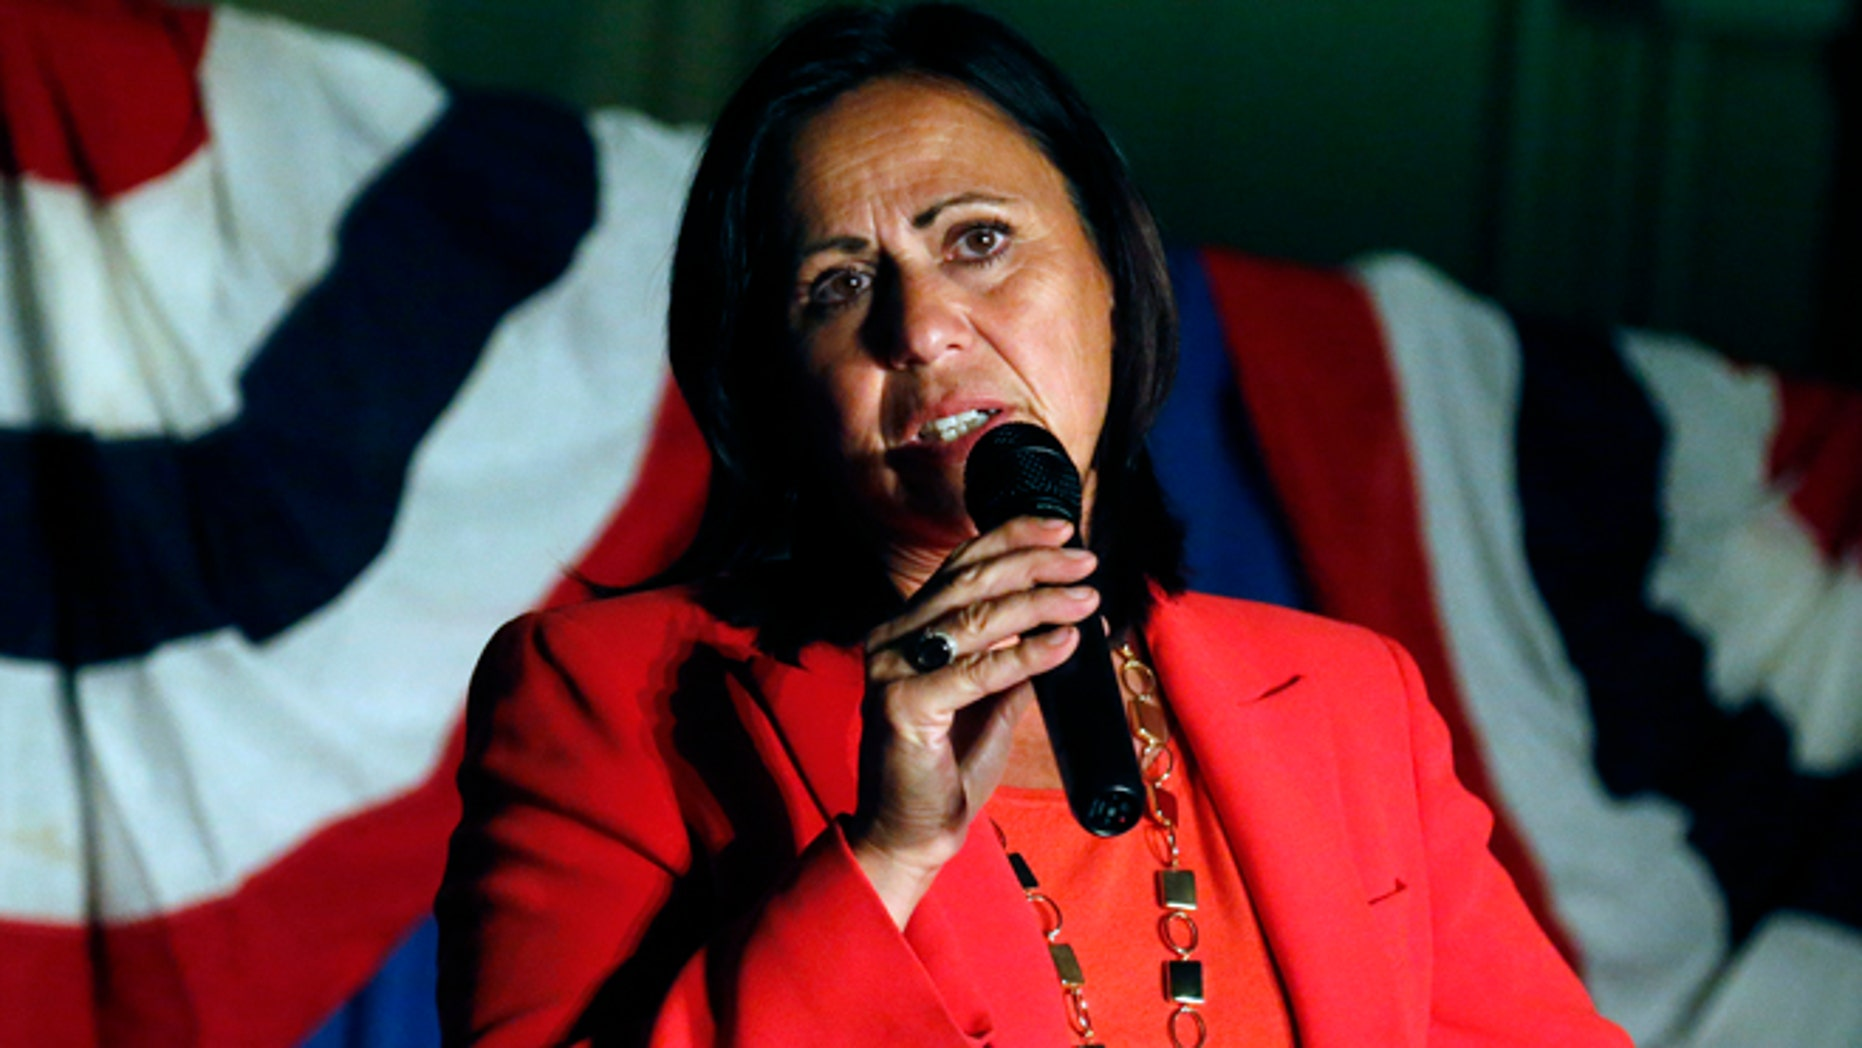 Sept. 10, 2013: Democratic state Sen. Angela Giron gives her concession speech after she lost in a recall vote in Pueblo, Colo.